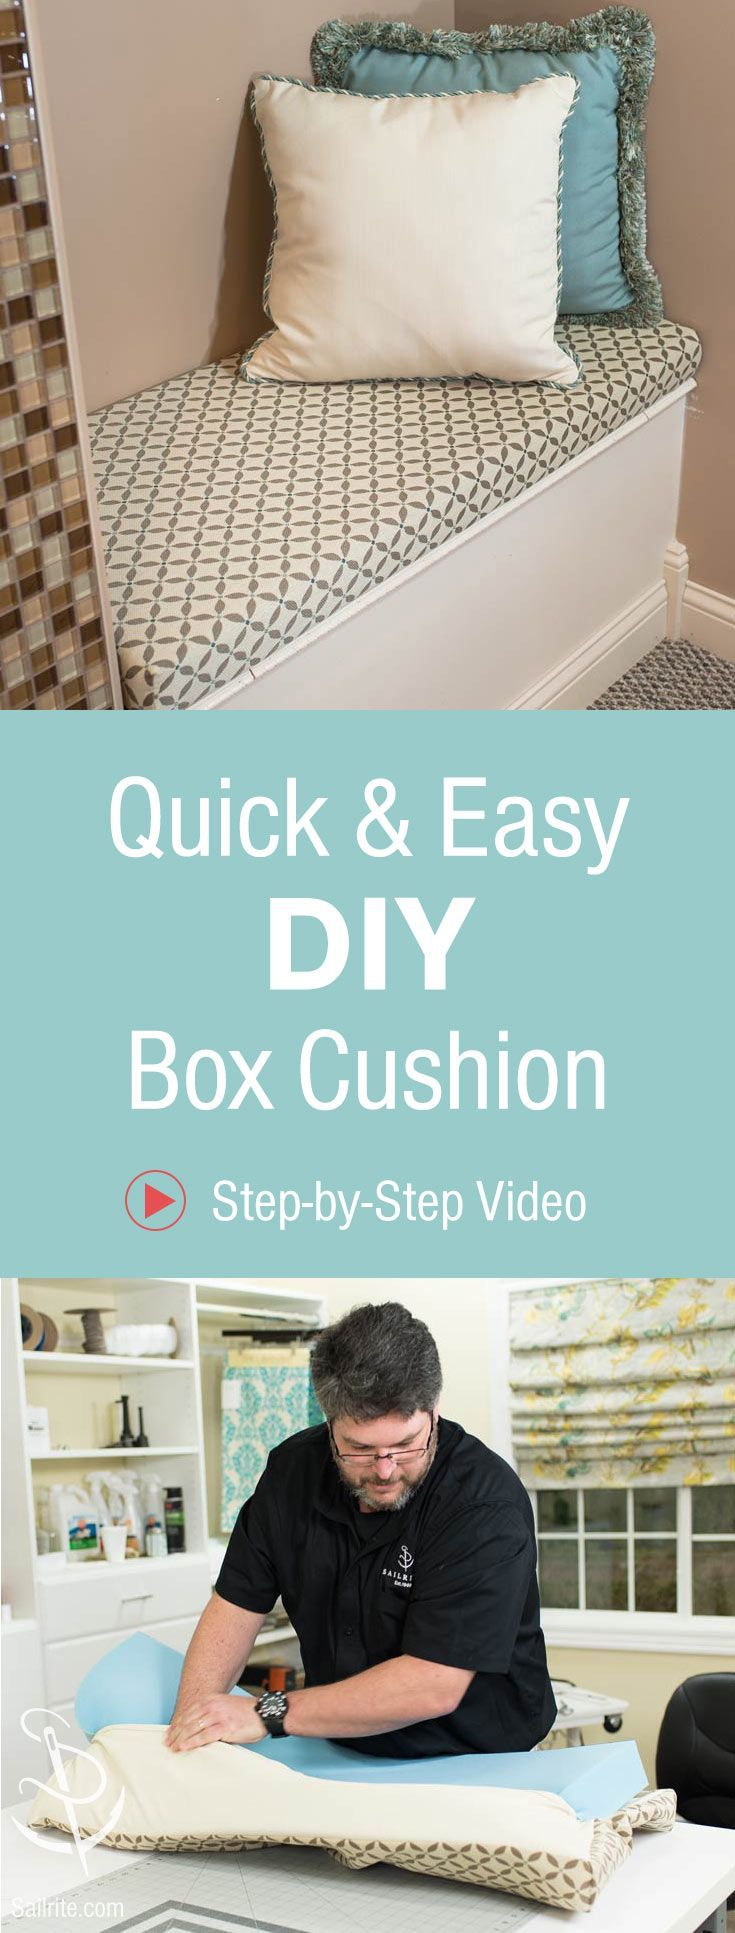 learn how to sew up a quick and easy box cushion in just 7 steps